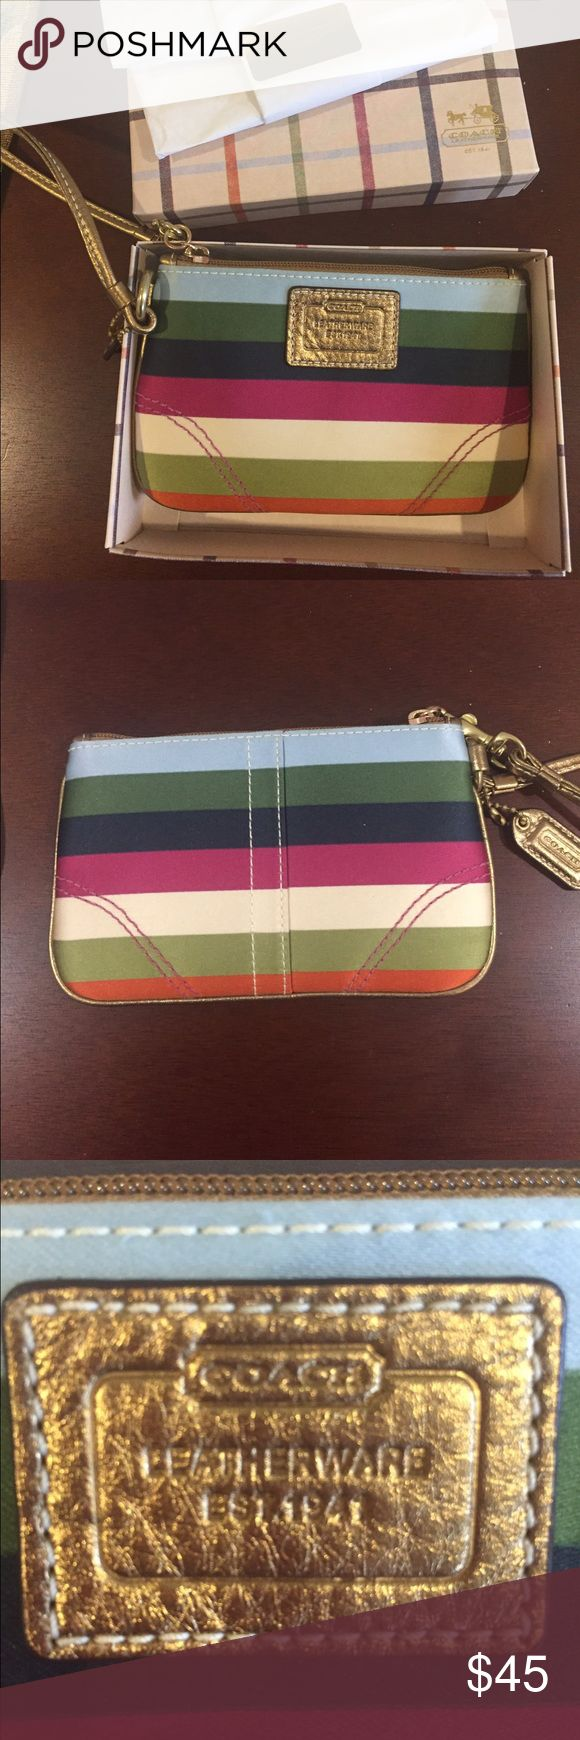 *NWT* COACH legacy striped wristlet New with tags! These colors are perfect for any season! Easy to grab before a night out or while running errands, or matching back to almost everything. Coach'S legacy collection. Coach Bags Clutches & Wristlets